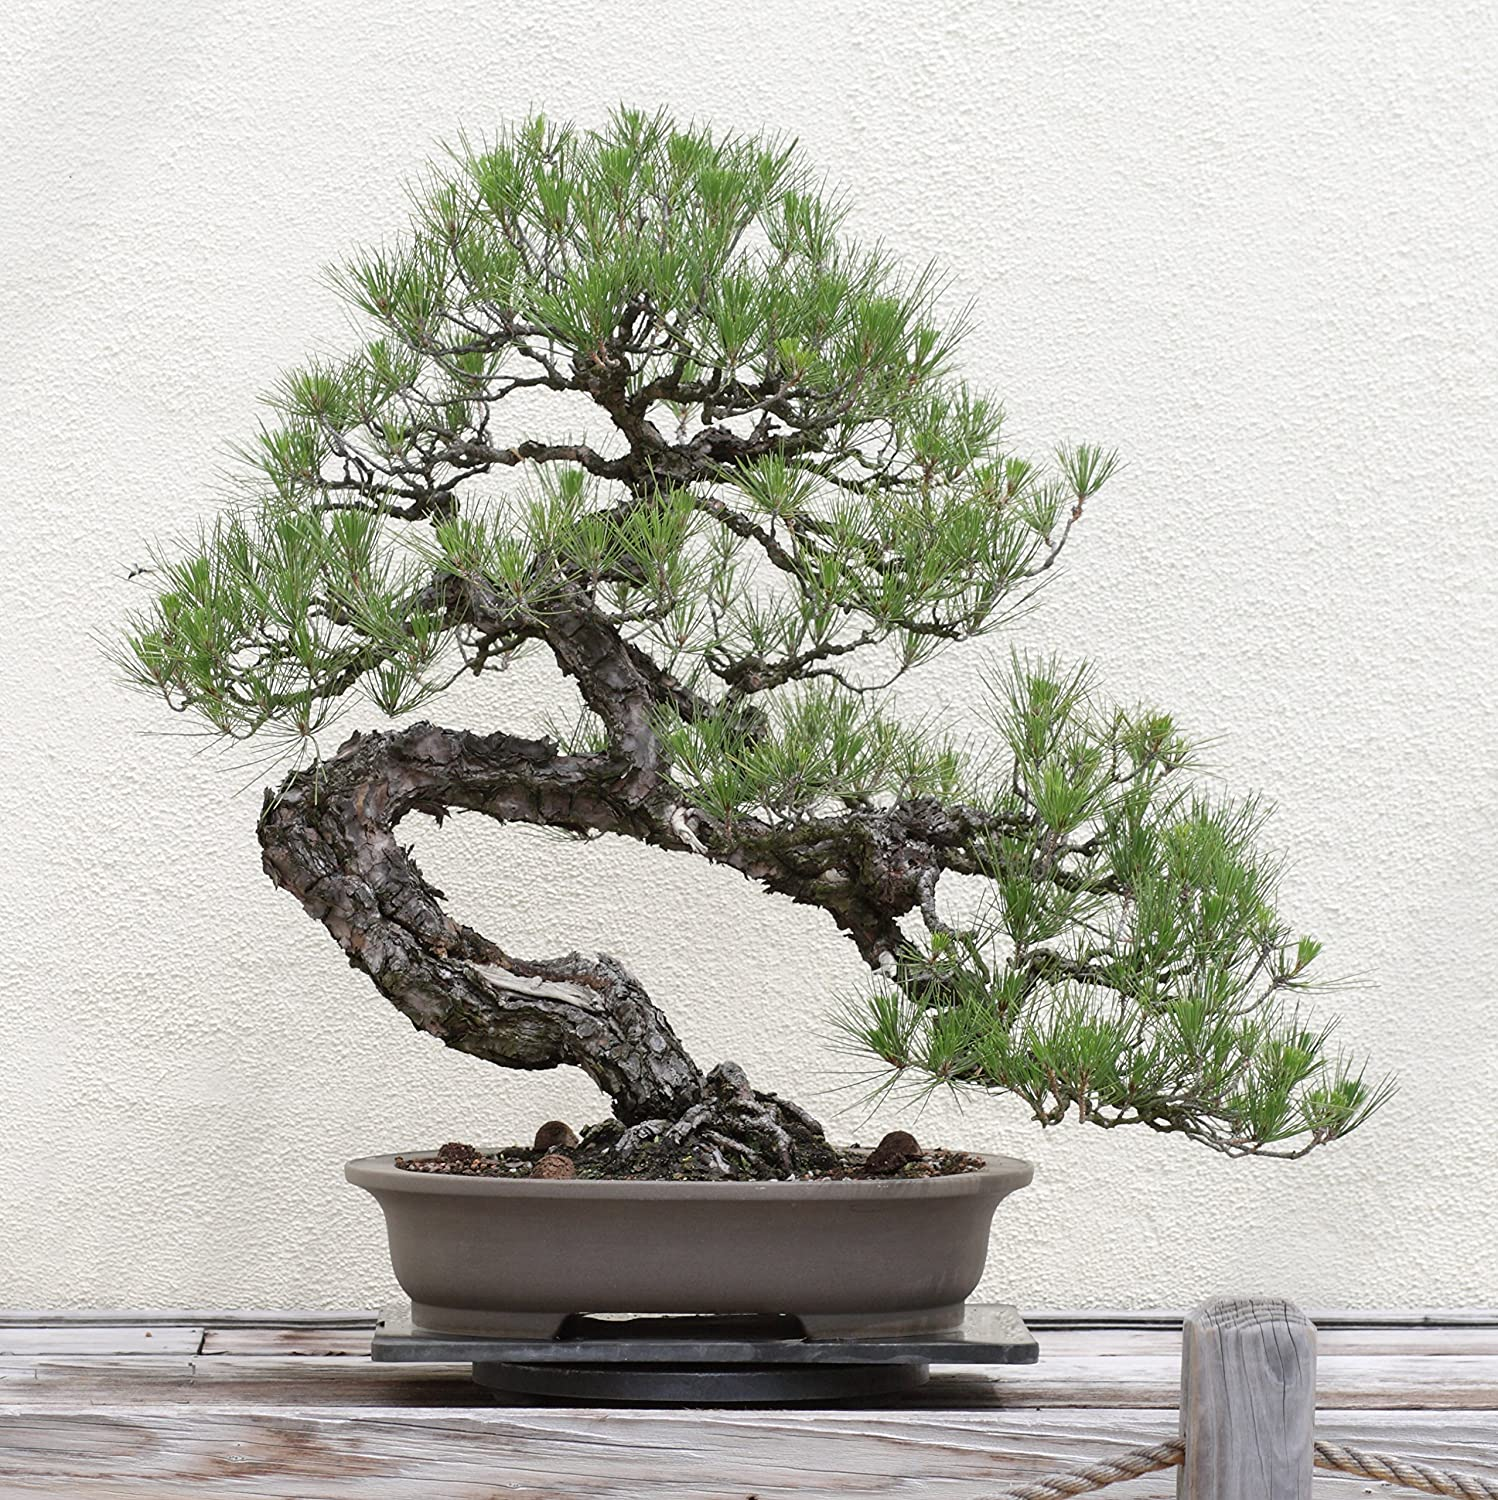 Amazon Com Bonsai Tree Japanese Black Pine Seed Grow Kit The Jonsteen Company Garden Outdoor